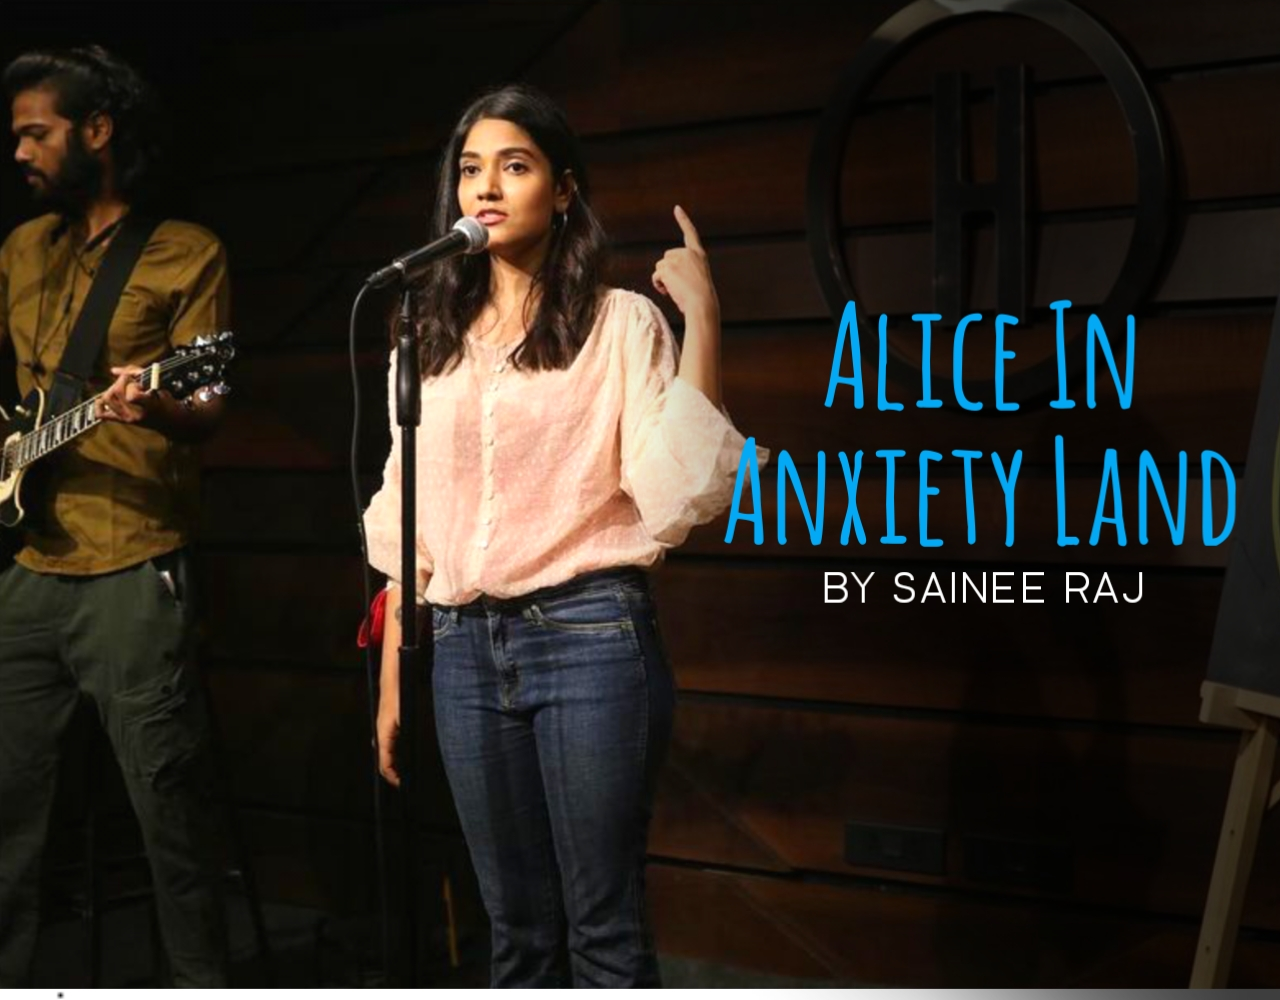 This Beautiful Poetry 'Alice In Anxiety Land' Has written and Performed by Sainee Raj.